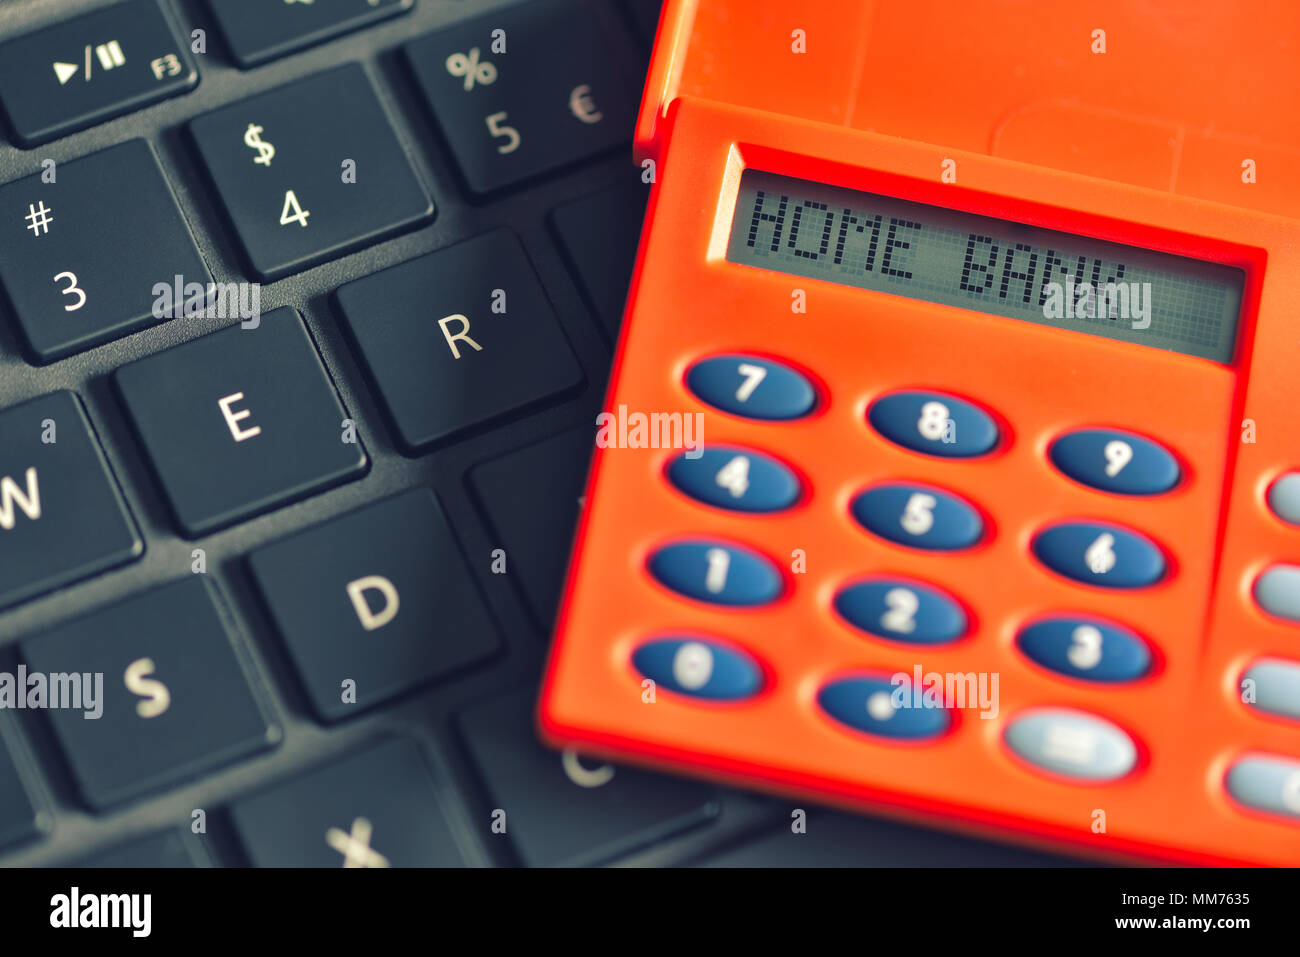 Home bank written on the display of the digipass over computer keyboard. Online banking transaction concept - Stock Image